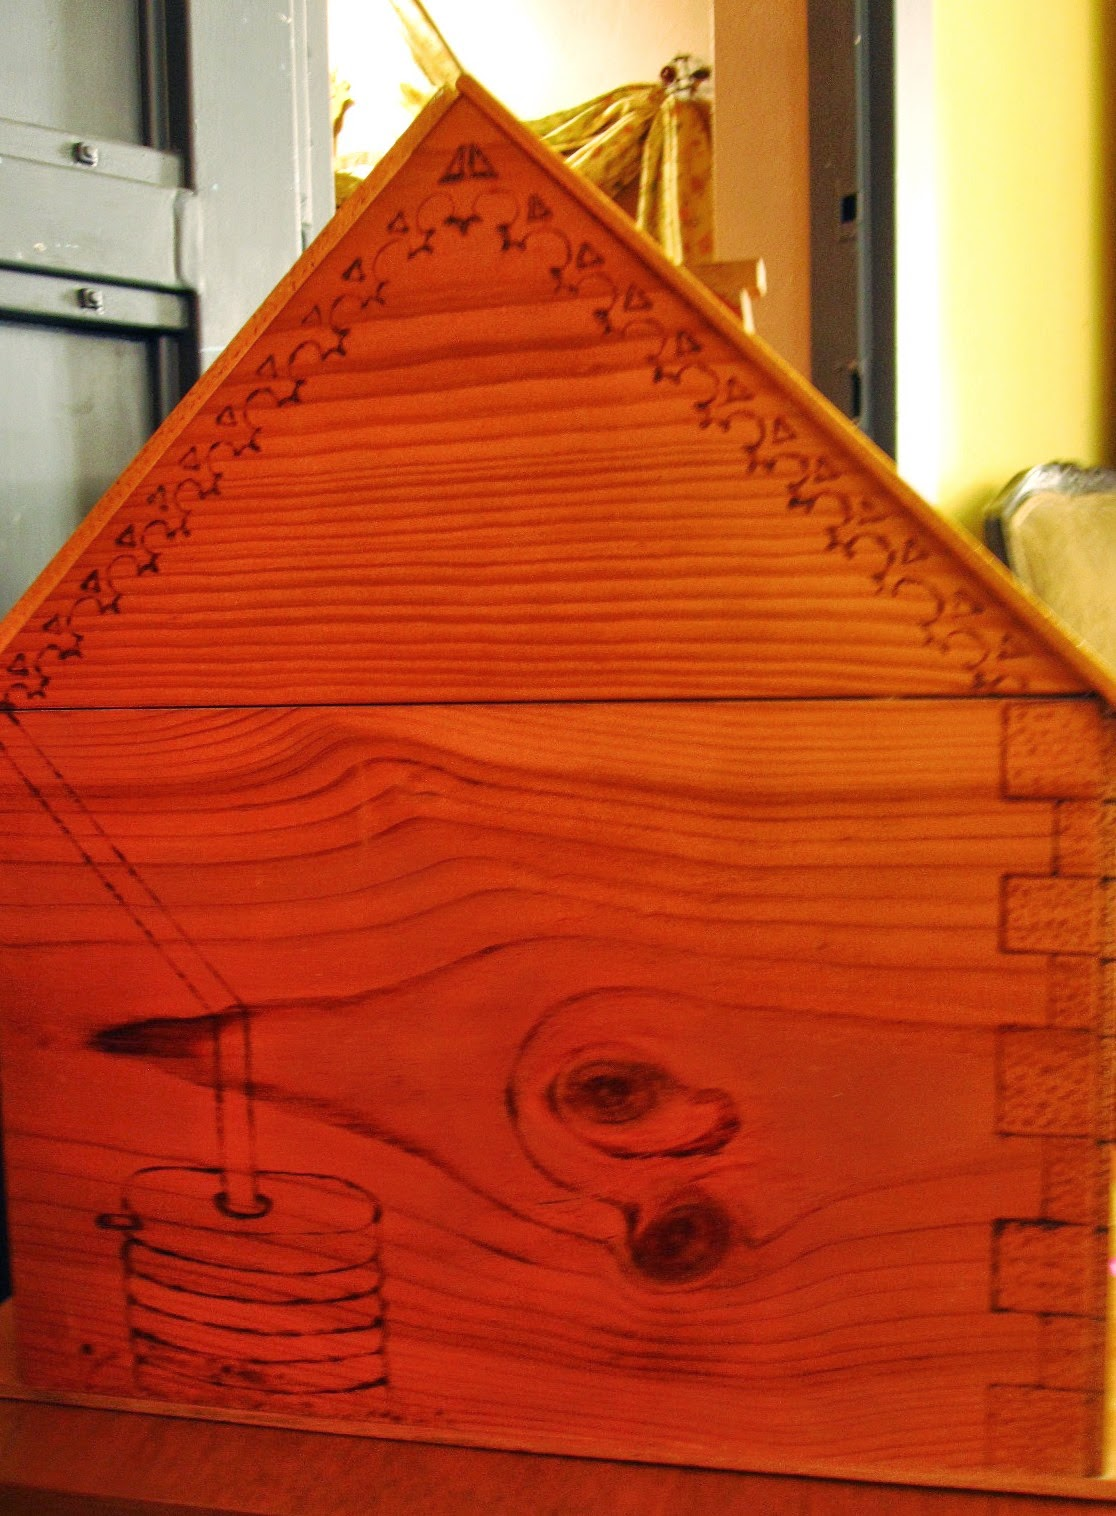 Side of a wooden dolls house, showing pokerwork water barrel and pipe, quoins and iron lace.